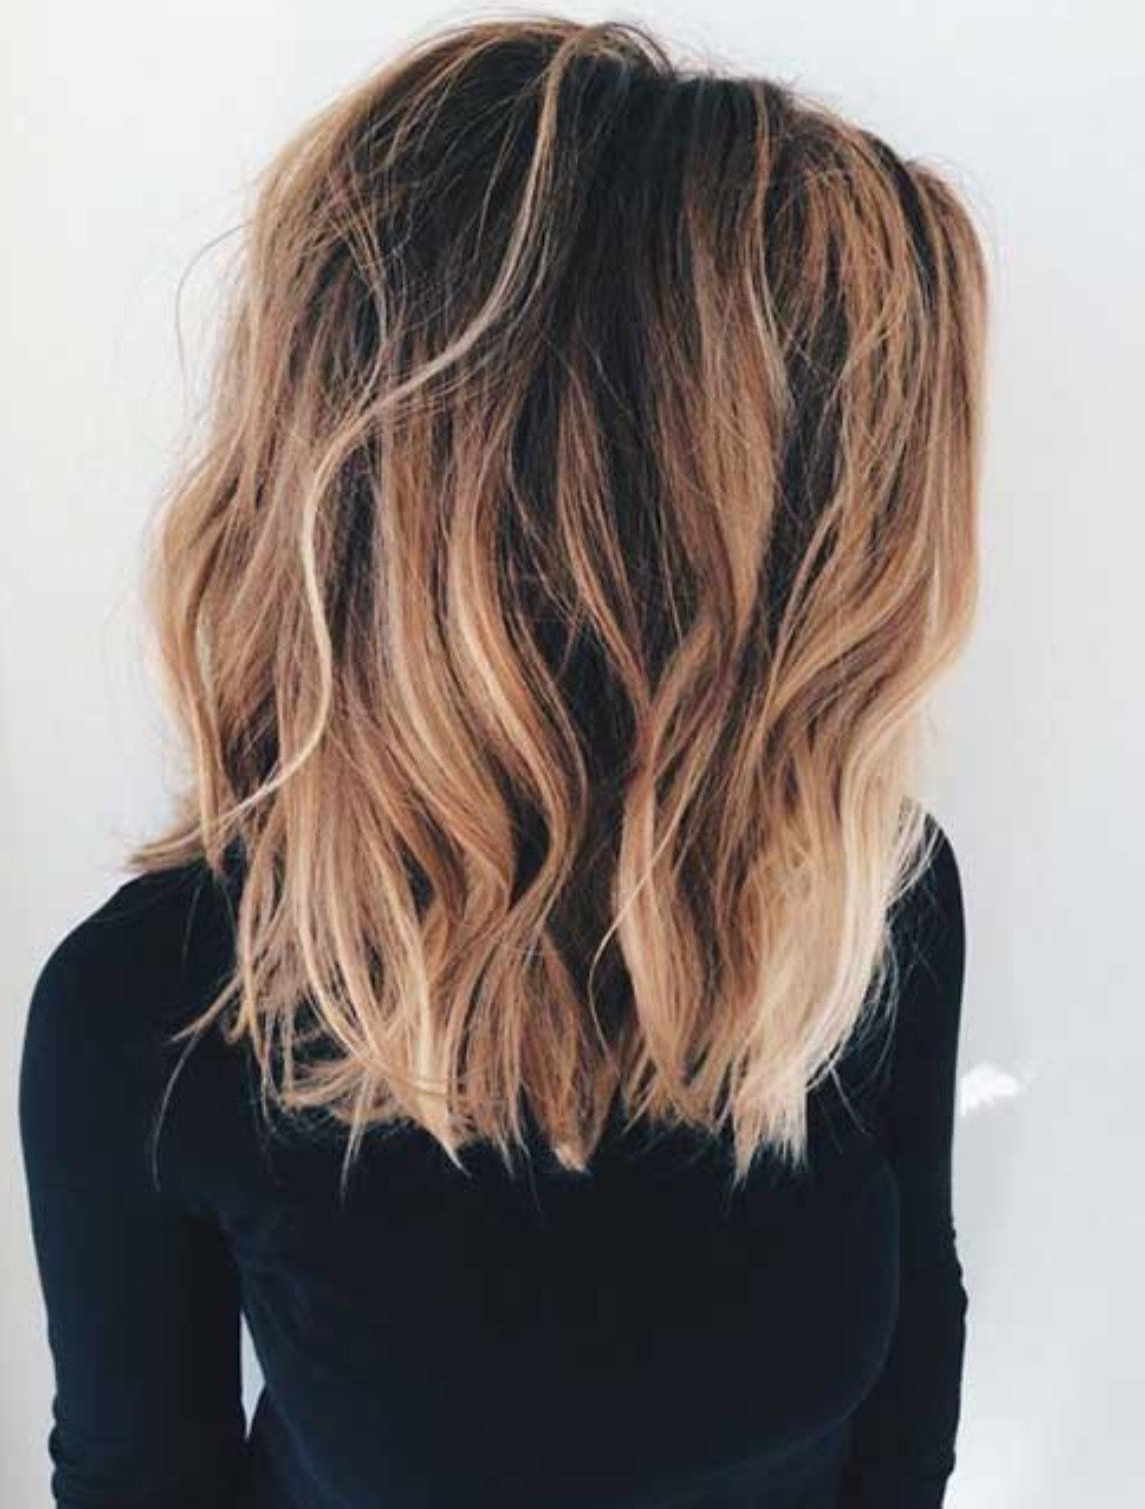 Favorite Brown Blonde Hair With Long Layers Hairstyles In Long Bob With Long Layers– Dark Brown Roots With Caramel And Blonde (View 11 of 20)